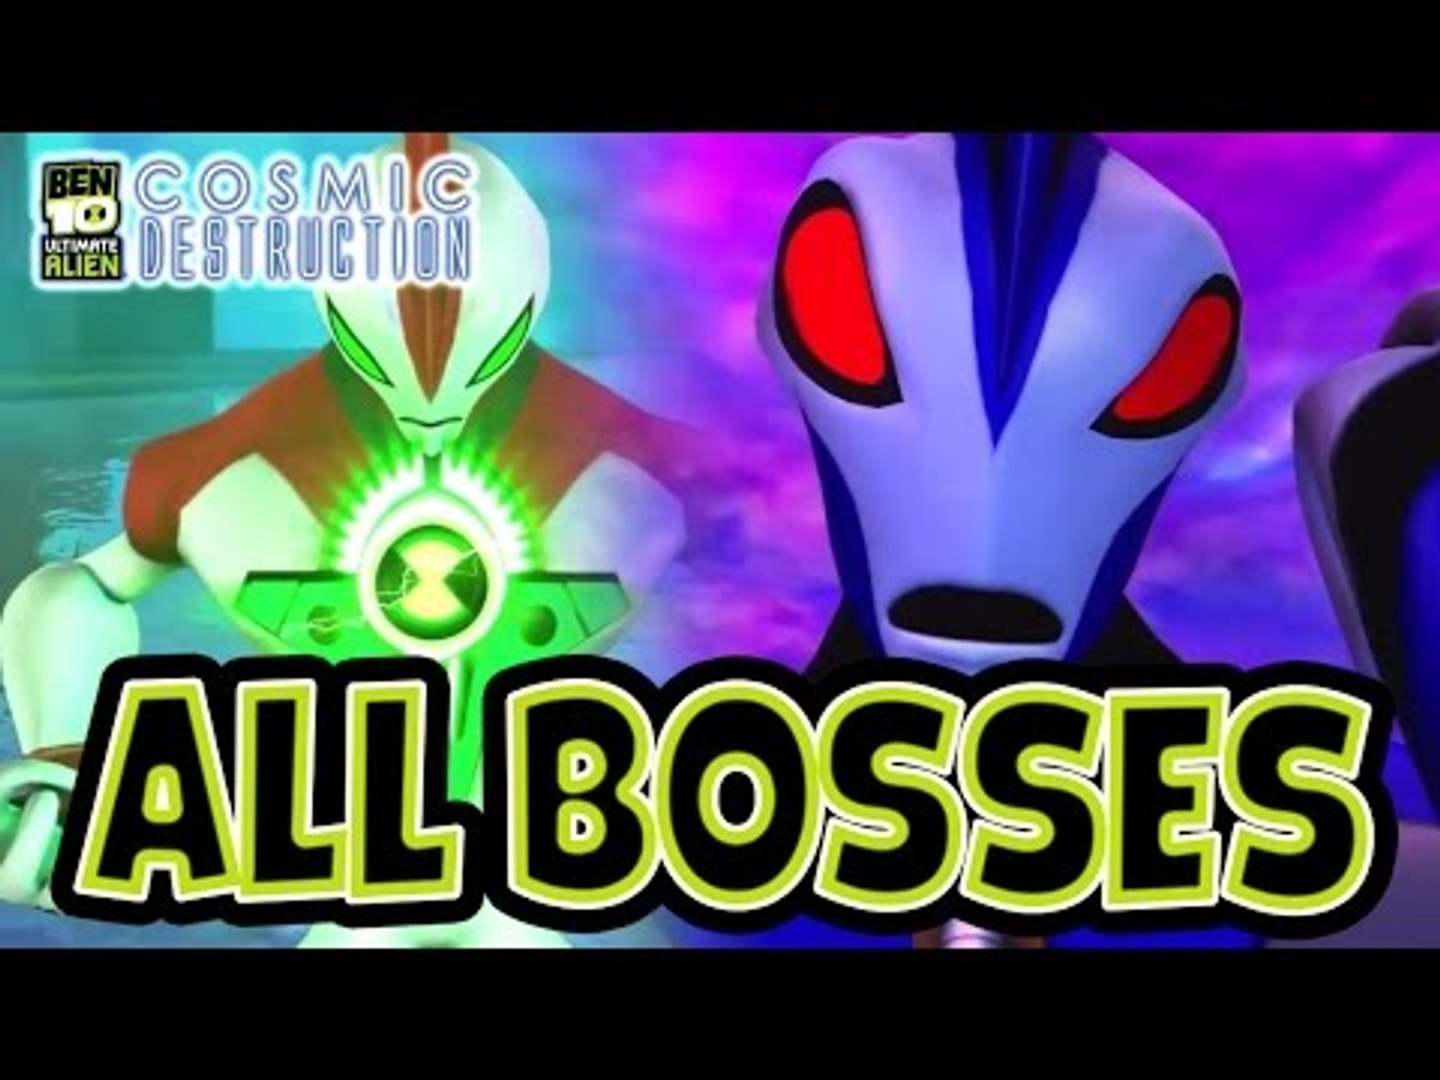 Ben 10 Ultimate Alien: Cosmic Destruction All Bosses | Boss Fights (PS3, X360, PS2, PSP, Wii)